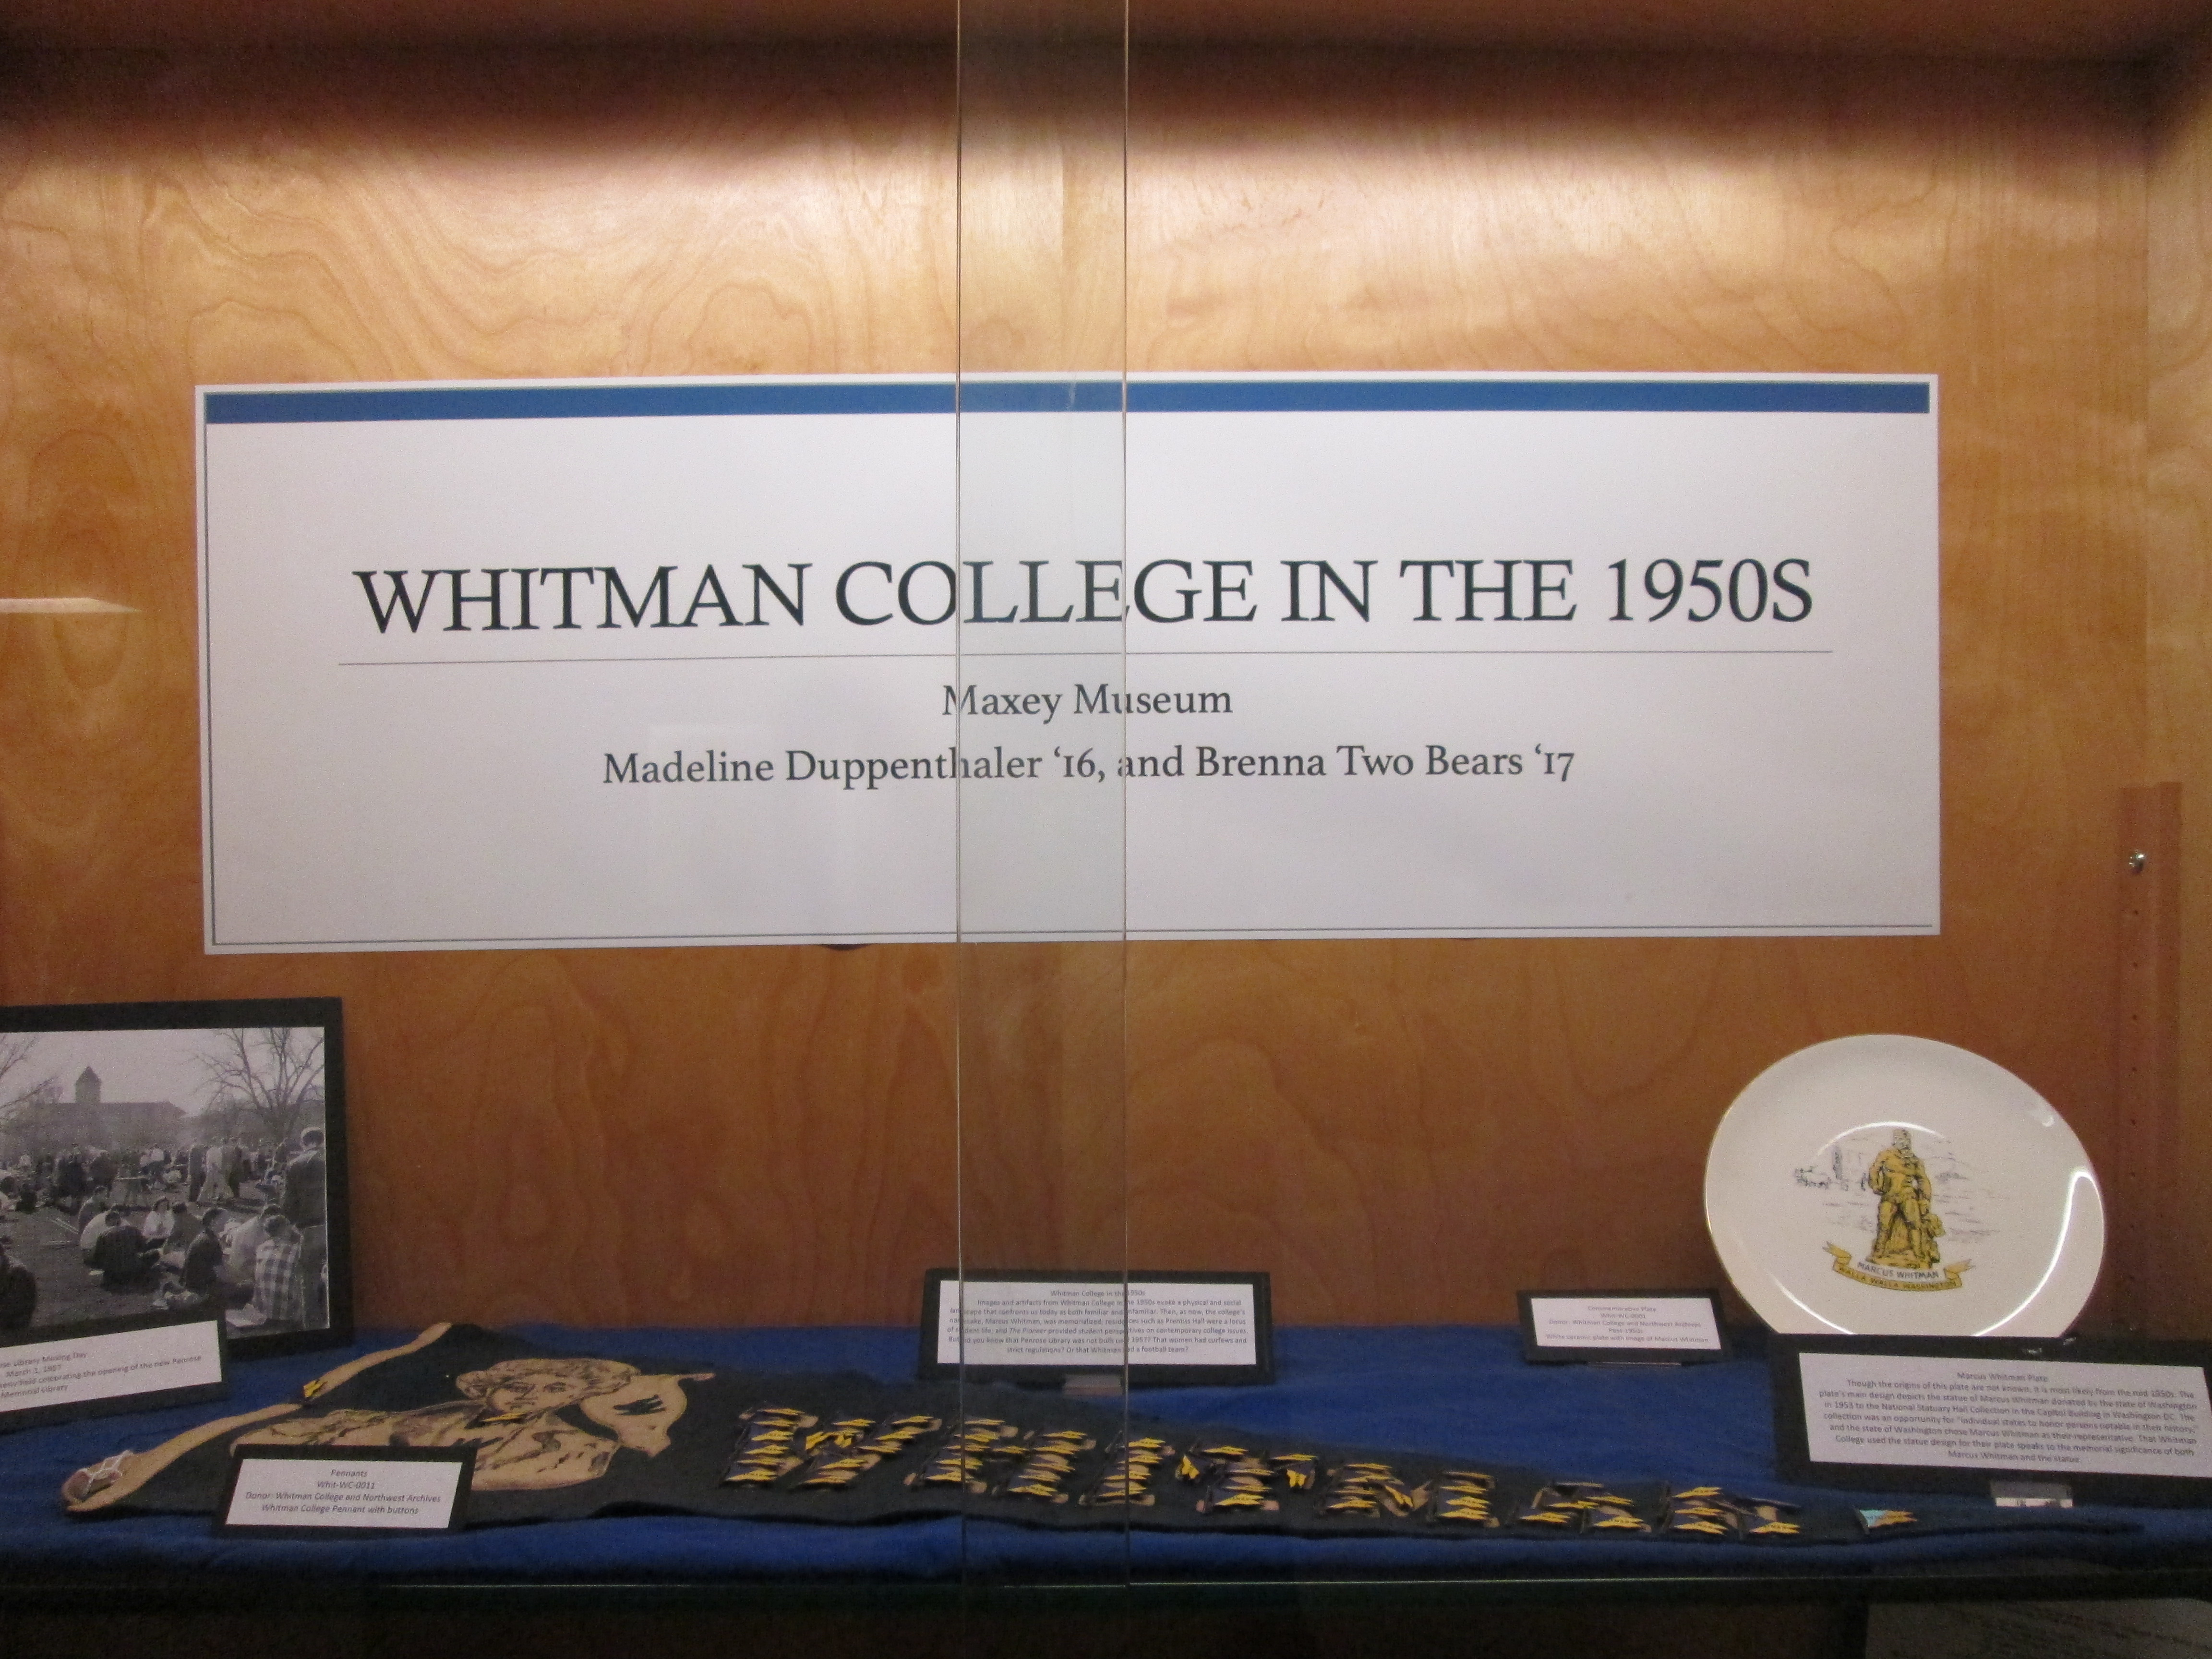 Top Shelf of Whitman in the 50's Exhibit